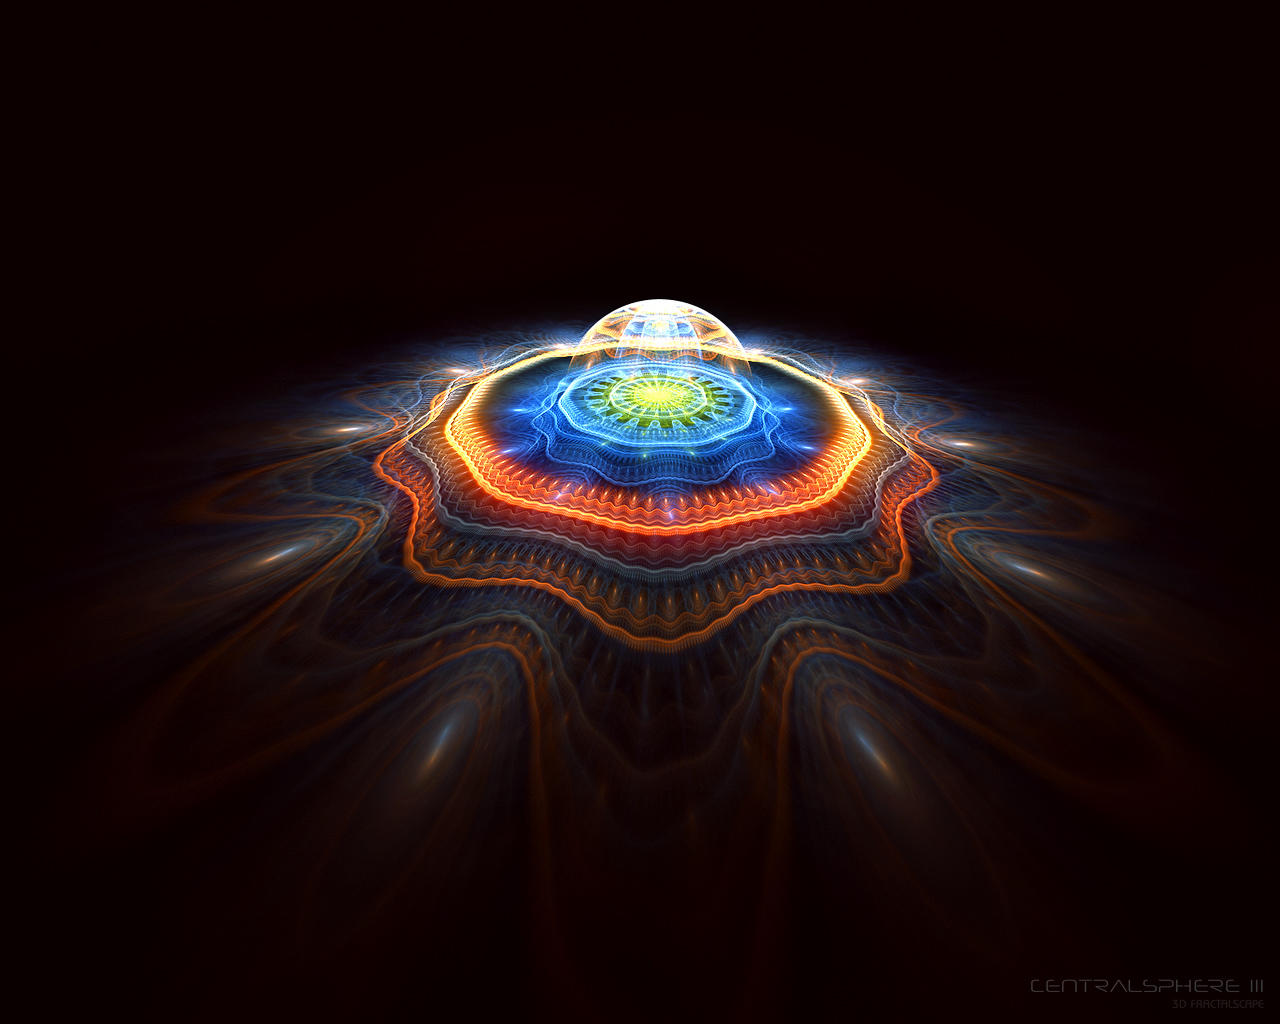 CentralSphere III by love1008